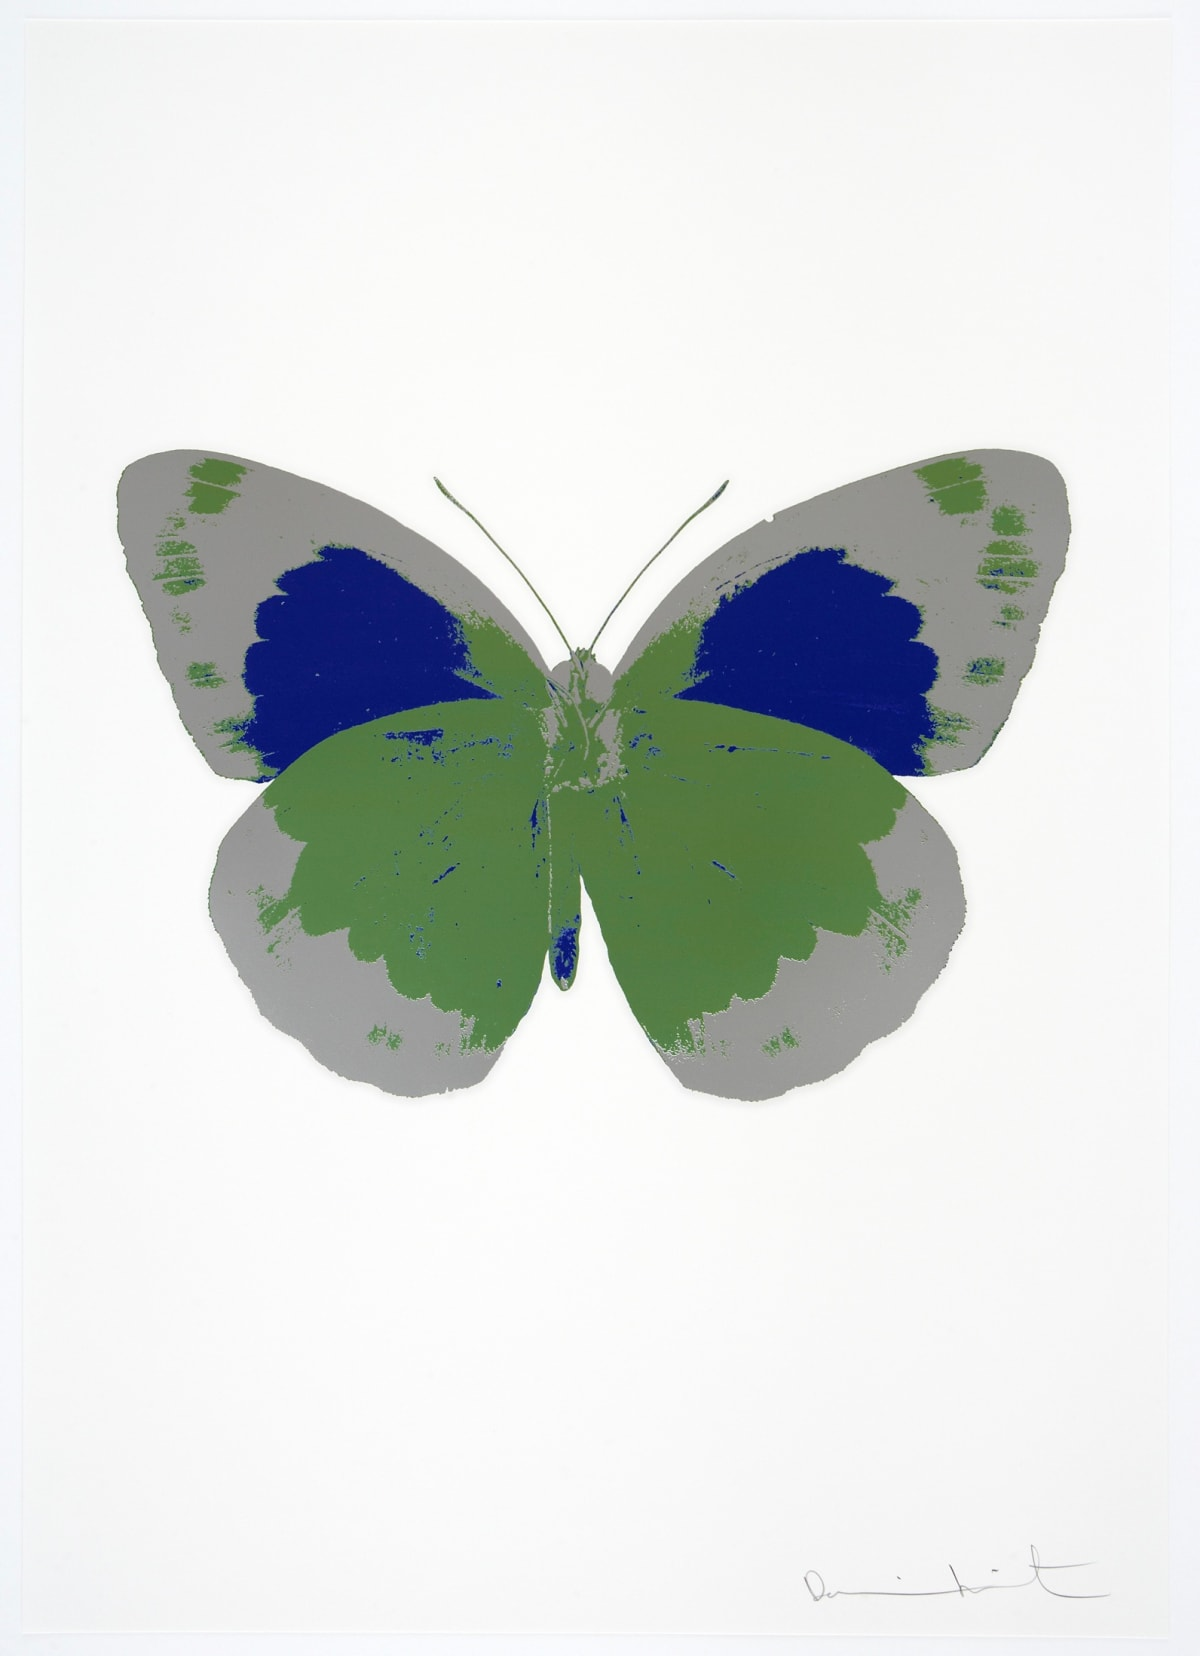 Damien Hirst The Souls II - Leaf Green/Silver Gloss/Westminster Blue, 2010 3 colour foil block on 300gsm Arches 88 archival paper. Signed and numbered. Published by Paul Stolper and Other Criteria 72 x 51cm OC7863 / 658-46 Edition of 15